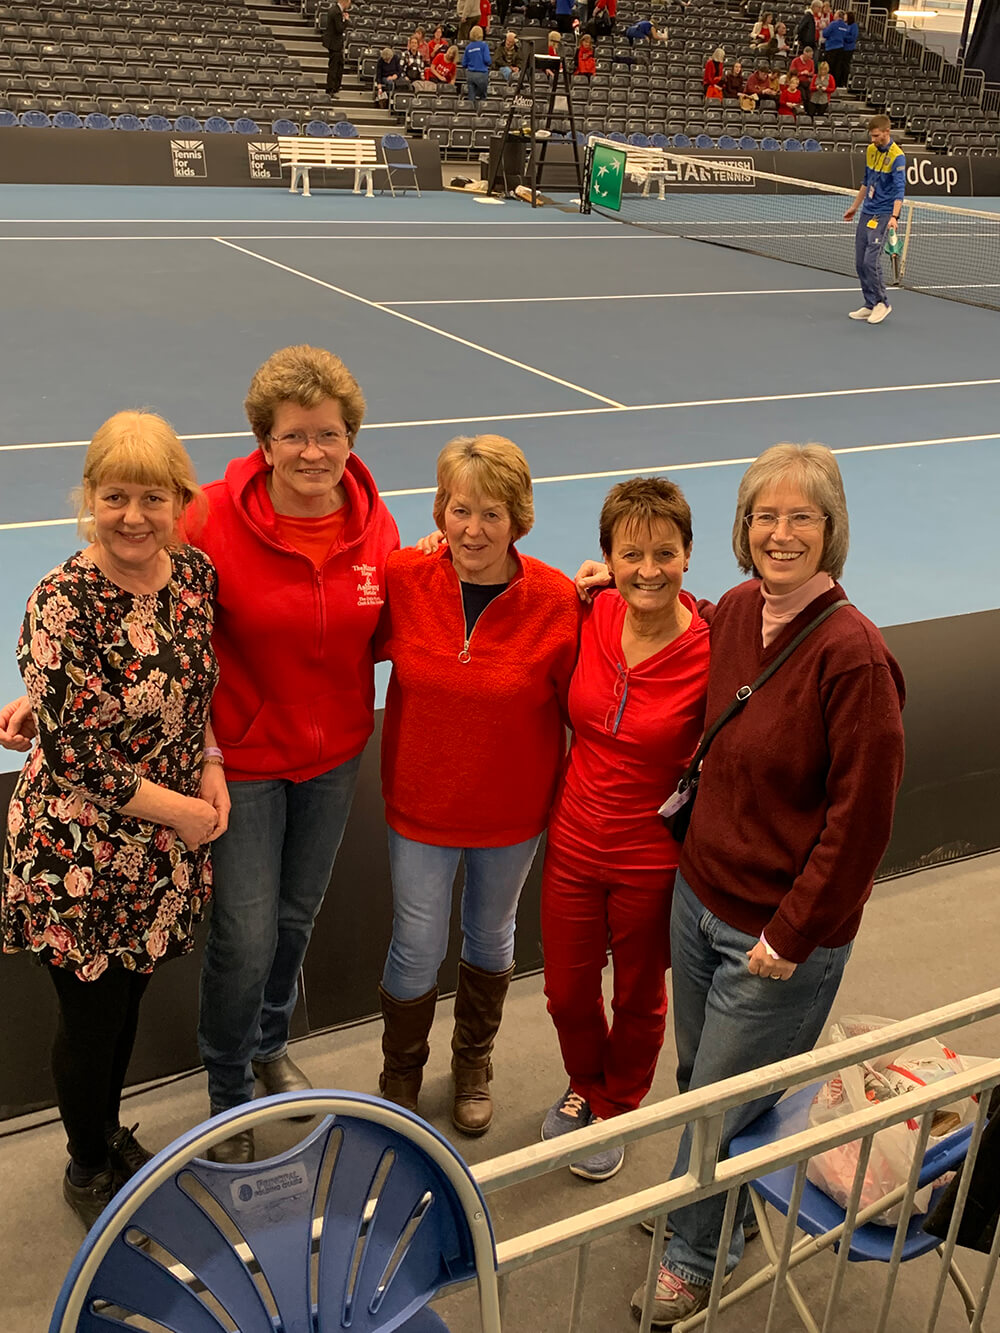 Trip to the Fed Cup